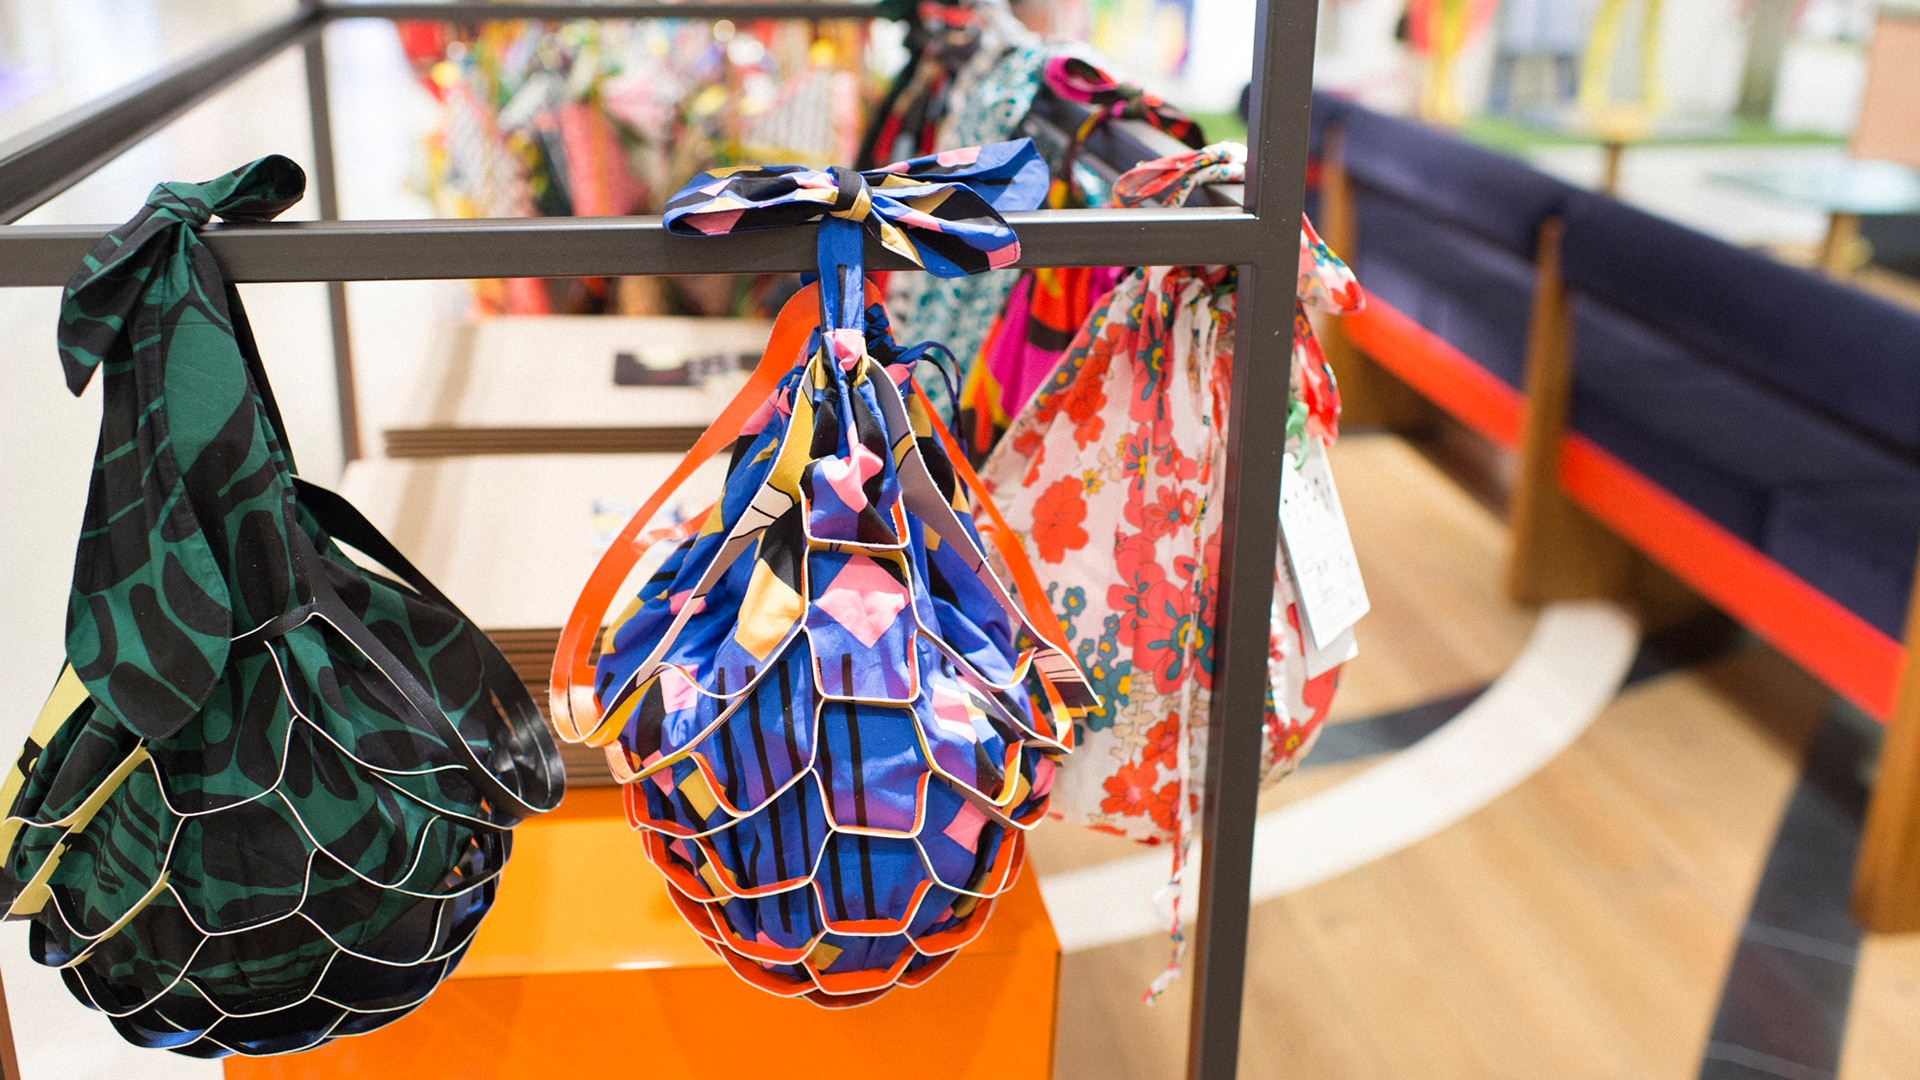 Marni Flower Cafè focus on products 2